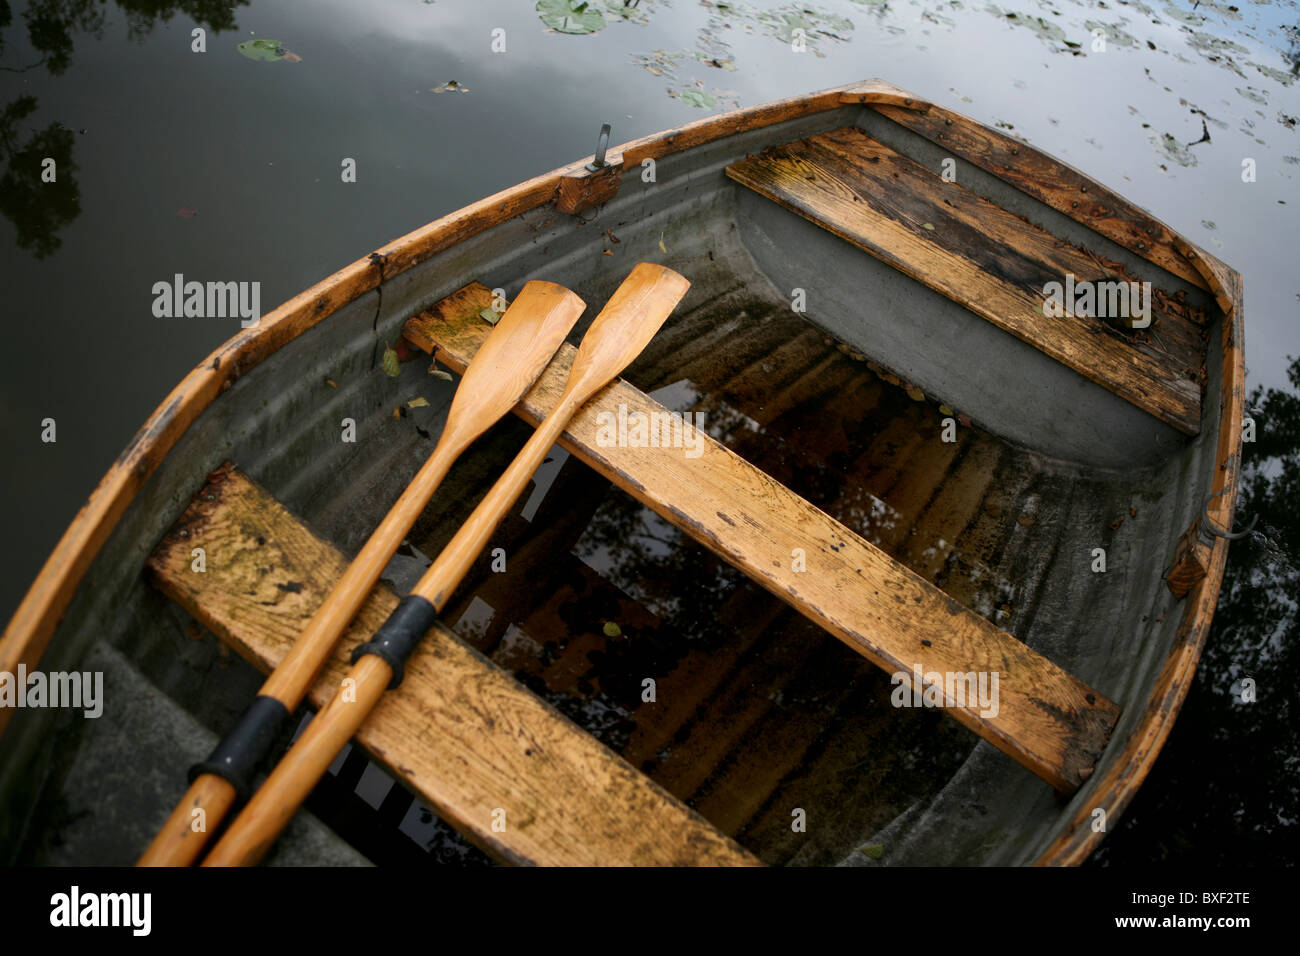 An old weather-beaten wooden row boat with oars, view from above. - Stock Image